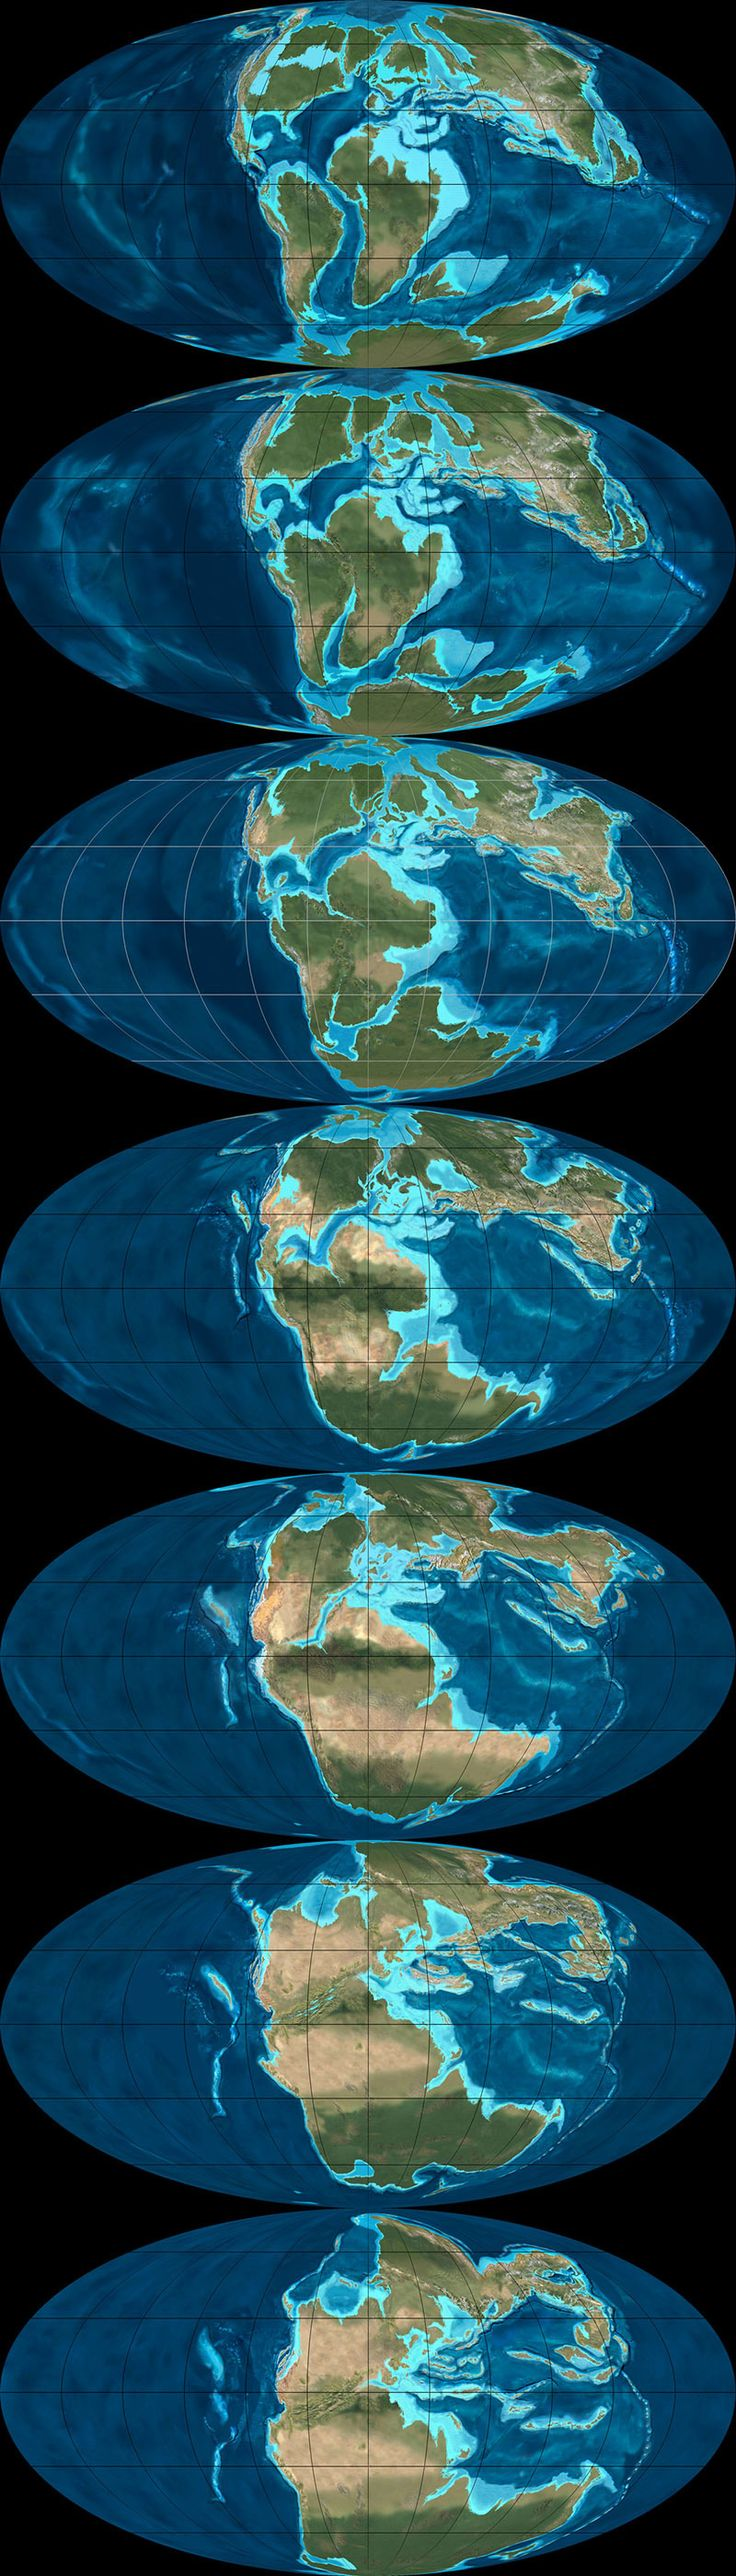 This second sequence shows the continents drifting apart, in reverse, from 105 million years ago to 240 million years ago.